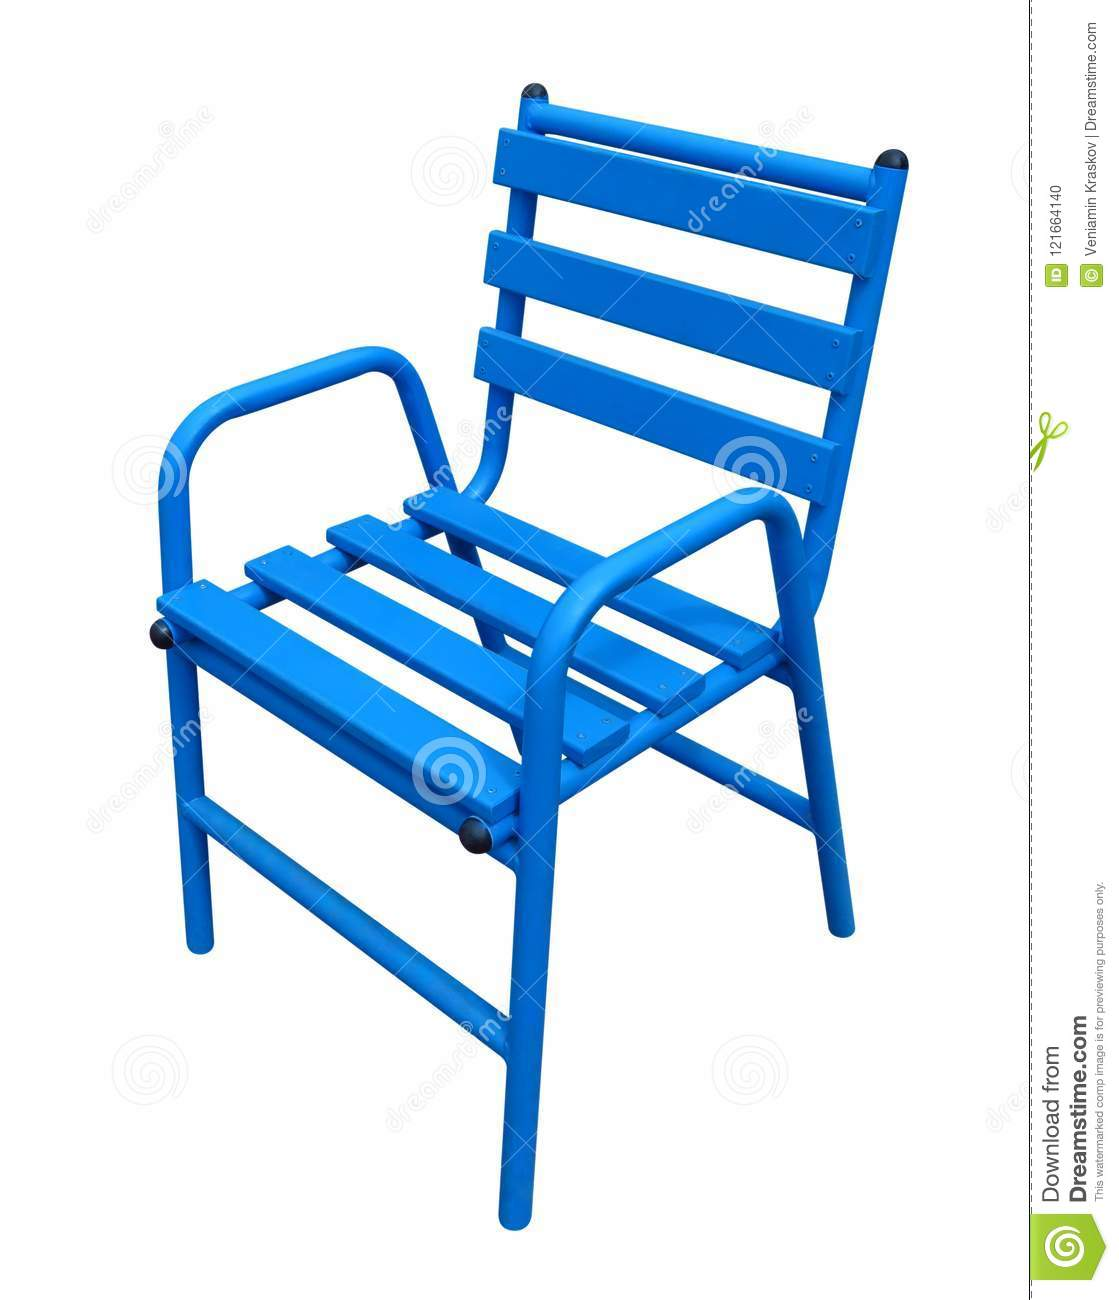 Famous Chair Blue Cannes Chair Stock Photo Image Of Riviera Chairs 121664140